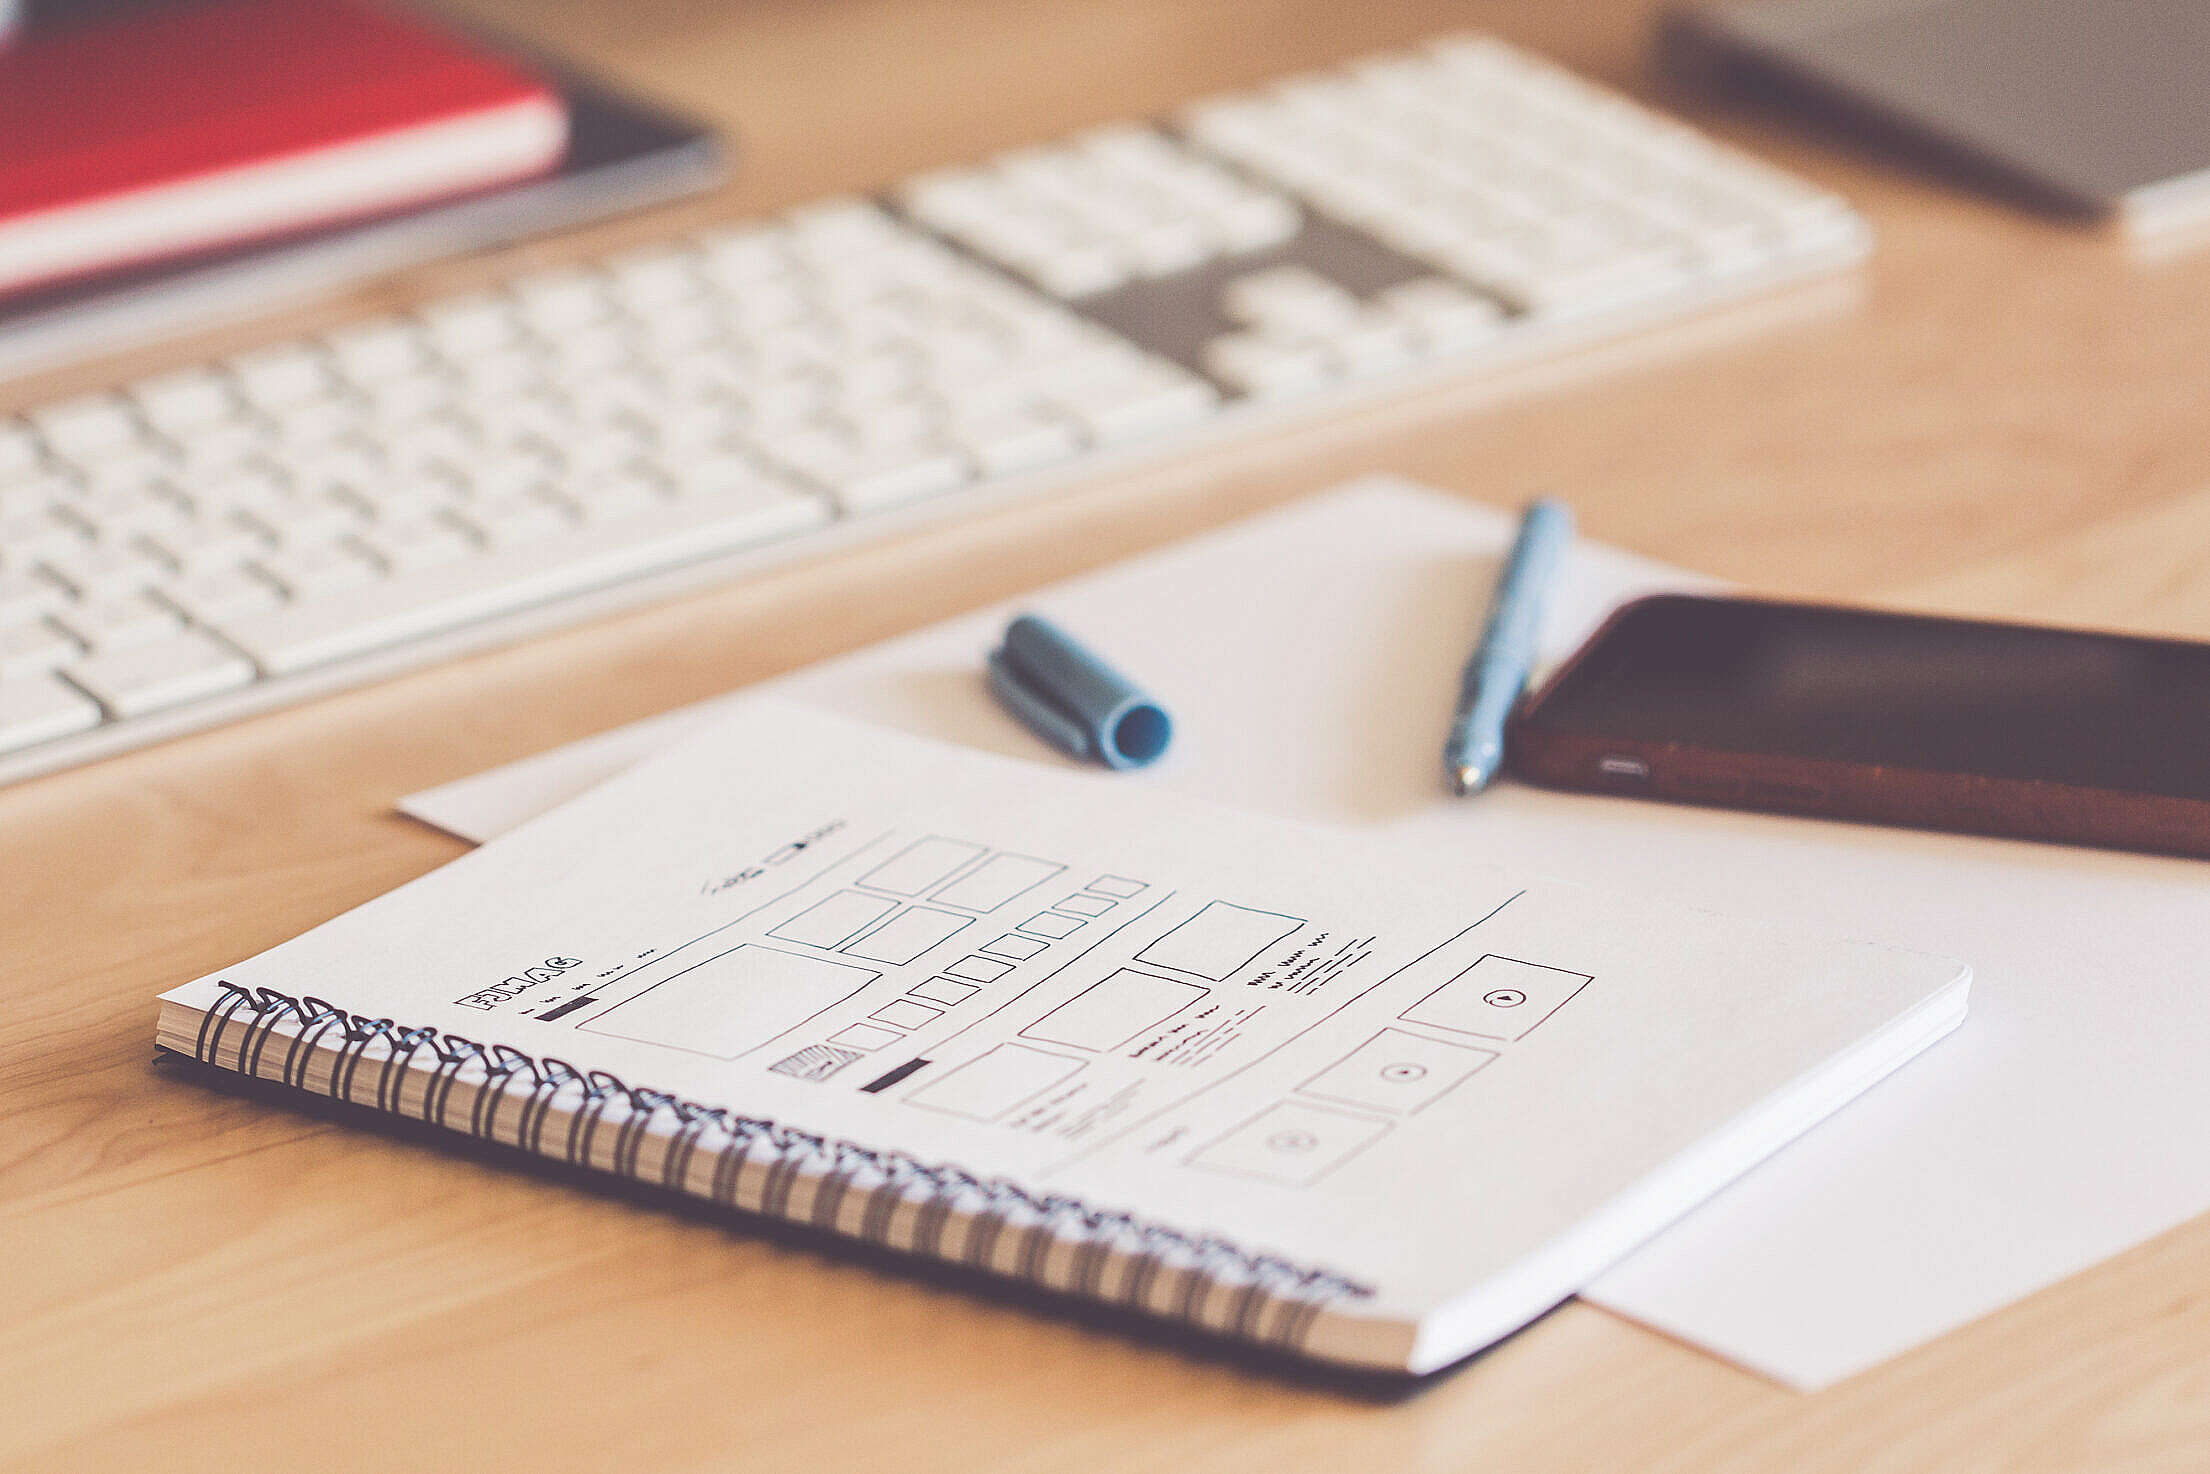 Sketching Website Layout Wireframes Free Stock Photo